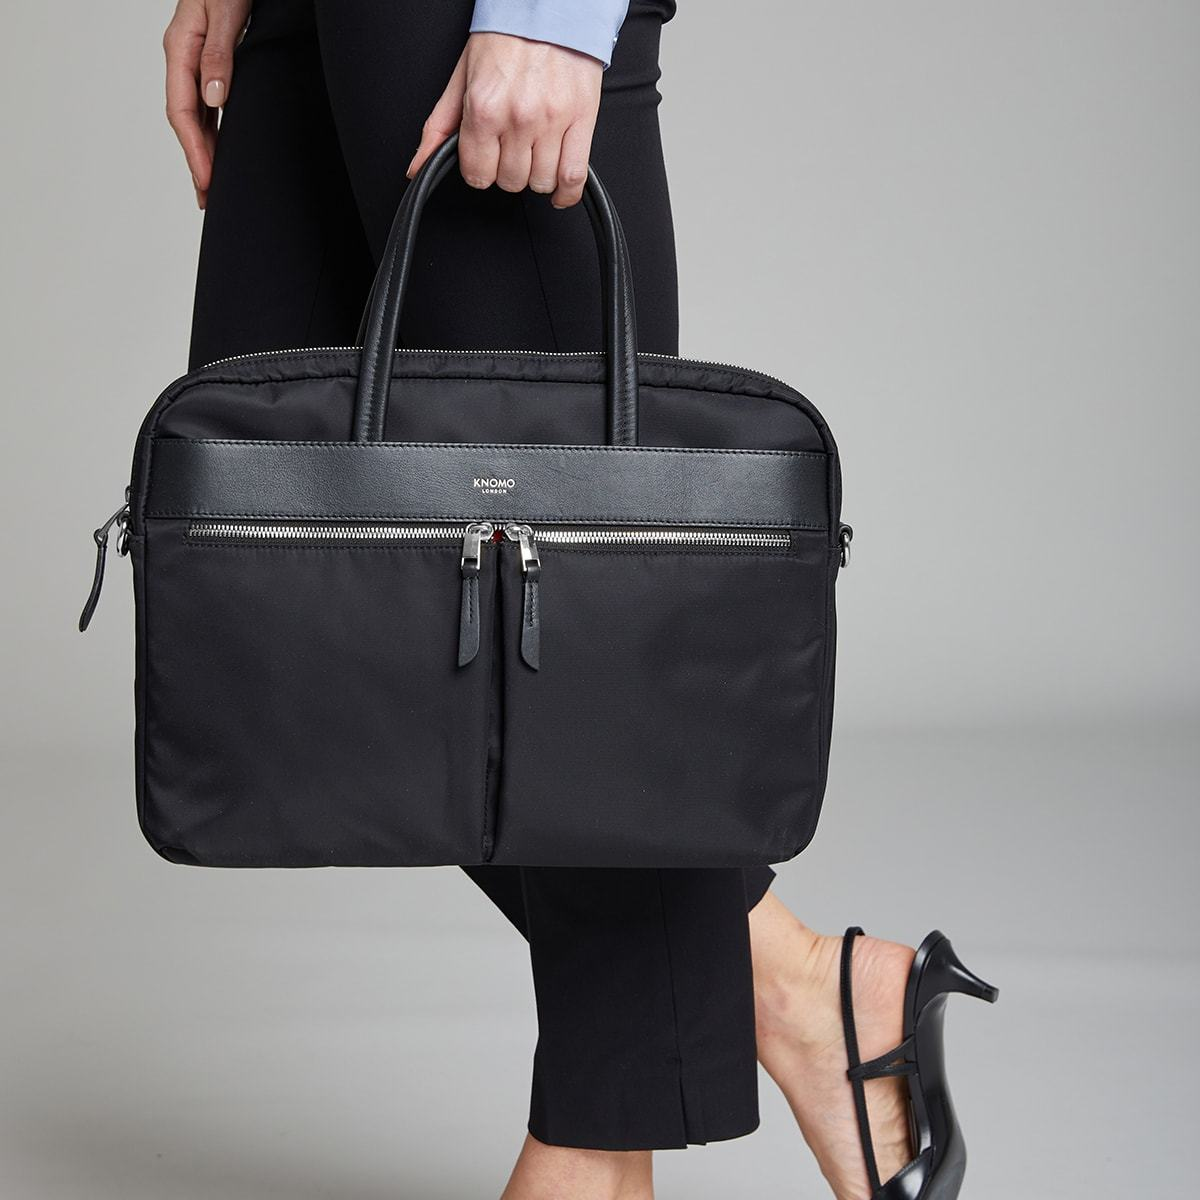 "KNOMO Hanover Laptop Briefcase Female Model Holding From Straps 14"" -  Black 